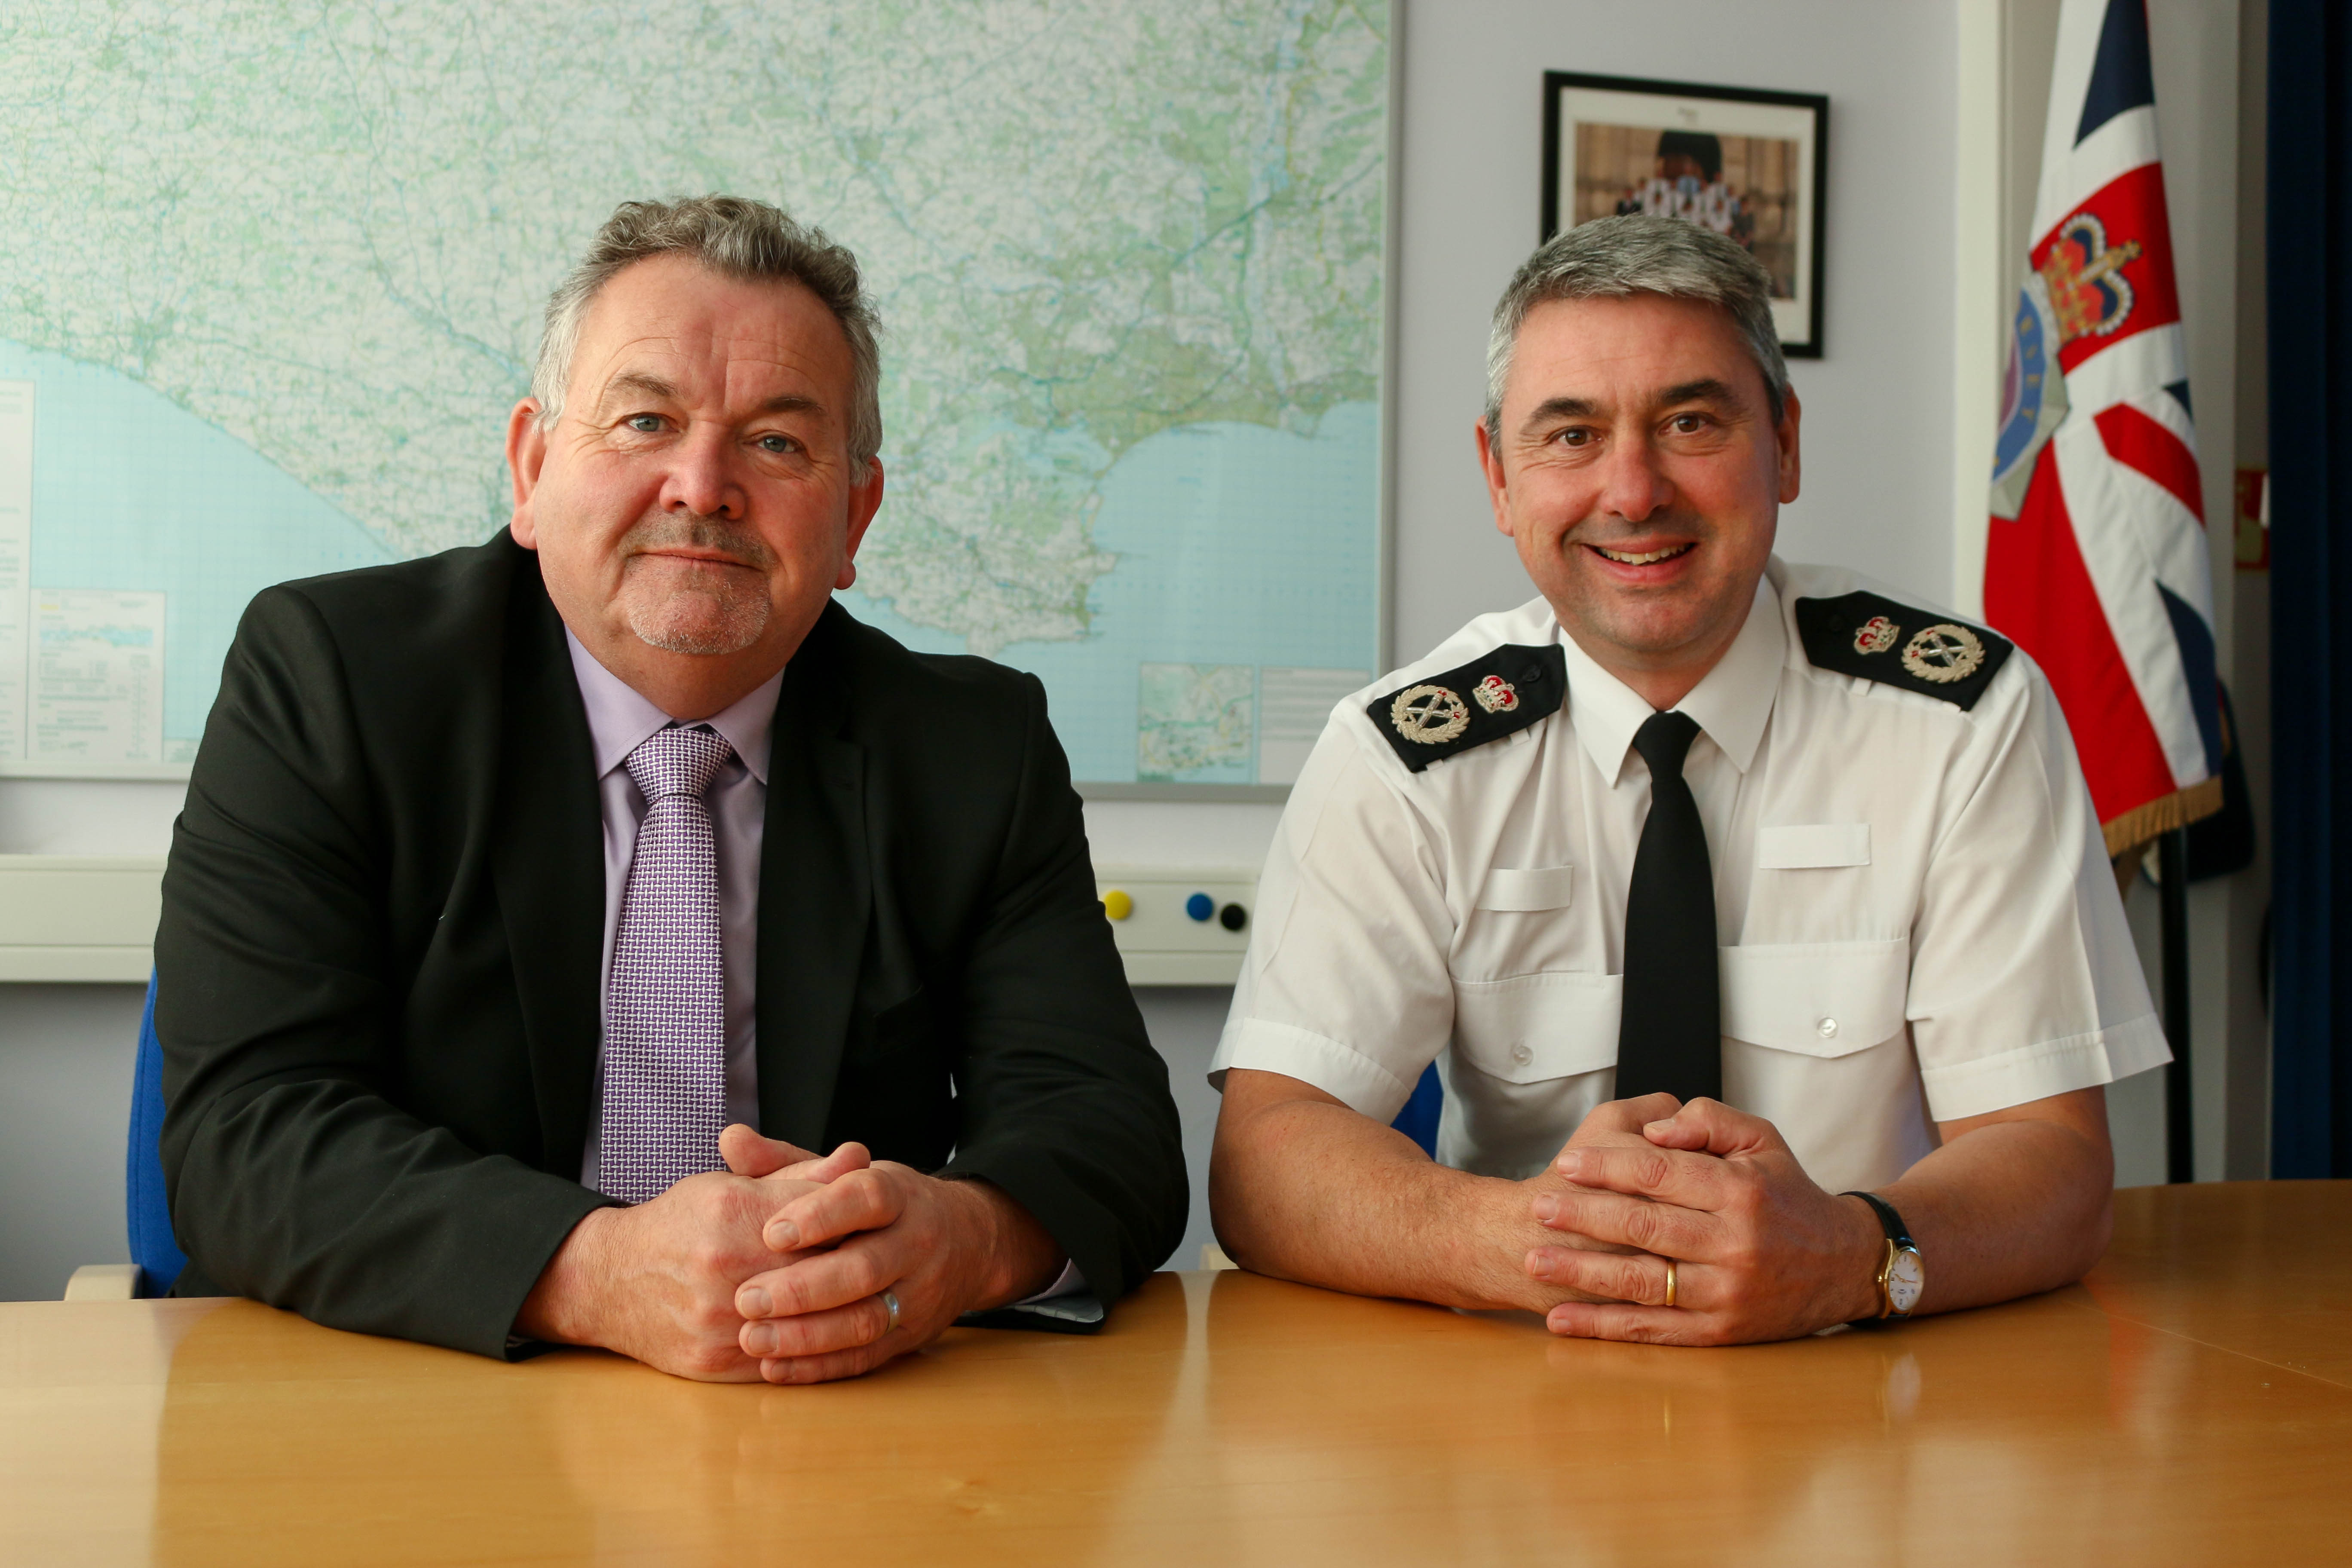 PCC Martyn Underhill and Chief Constable James Vaughan